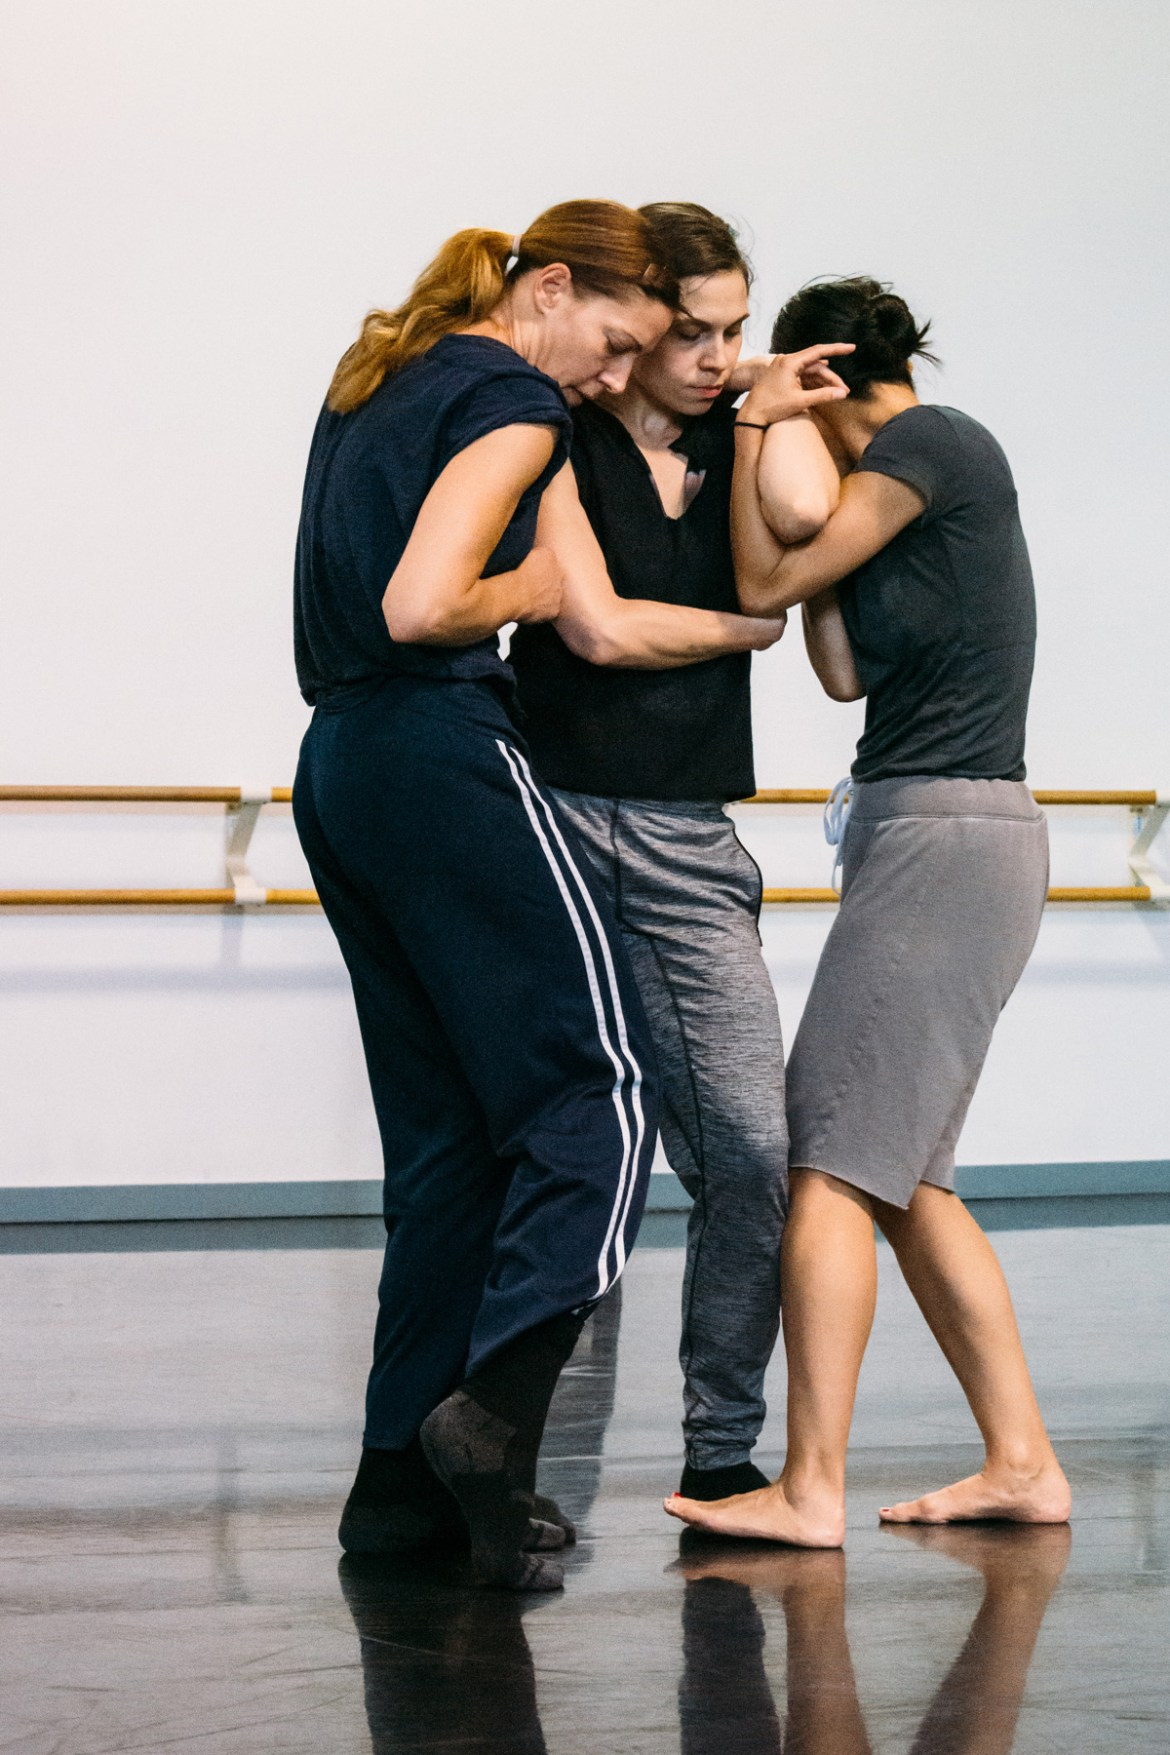 "Jacqueline Burnett, Meredith Dincolo and Robyn Mineko Williams in rehearsal for Robyn Mineko Williams' Echo Mine, photographed by Chloe Hamilton. From the DancerMusic.com story by Johnny Nevin, ""INSIDE: Robyn Mineko Williams and ""Echo Mine"" at Dance for Life 2019"", in which Robyn talks about creating the piece with legendary dancer, teacher and founding member of Hubbard Street Dance Chicago, Claire Bataille."